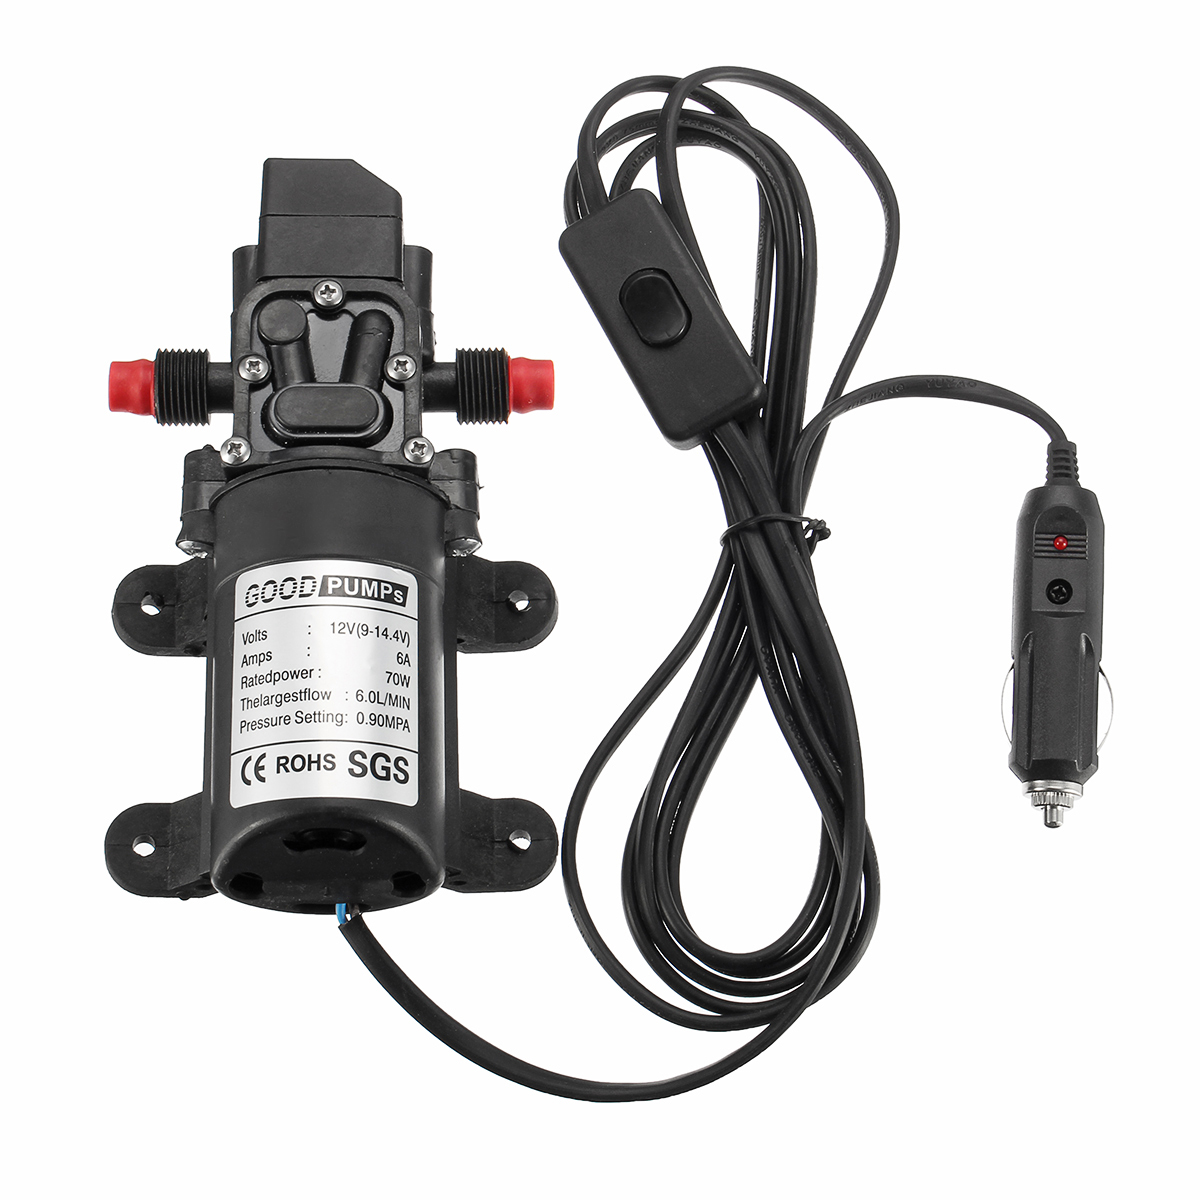 12V 70W High Pressure Washer Power Pump Self-priming Electric Water Wash